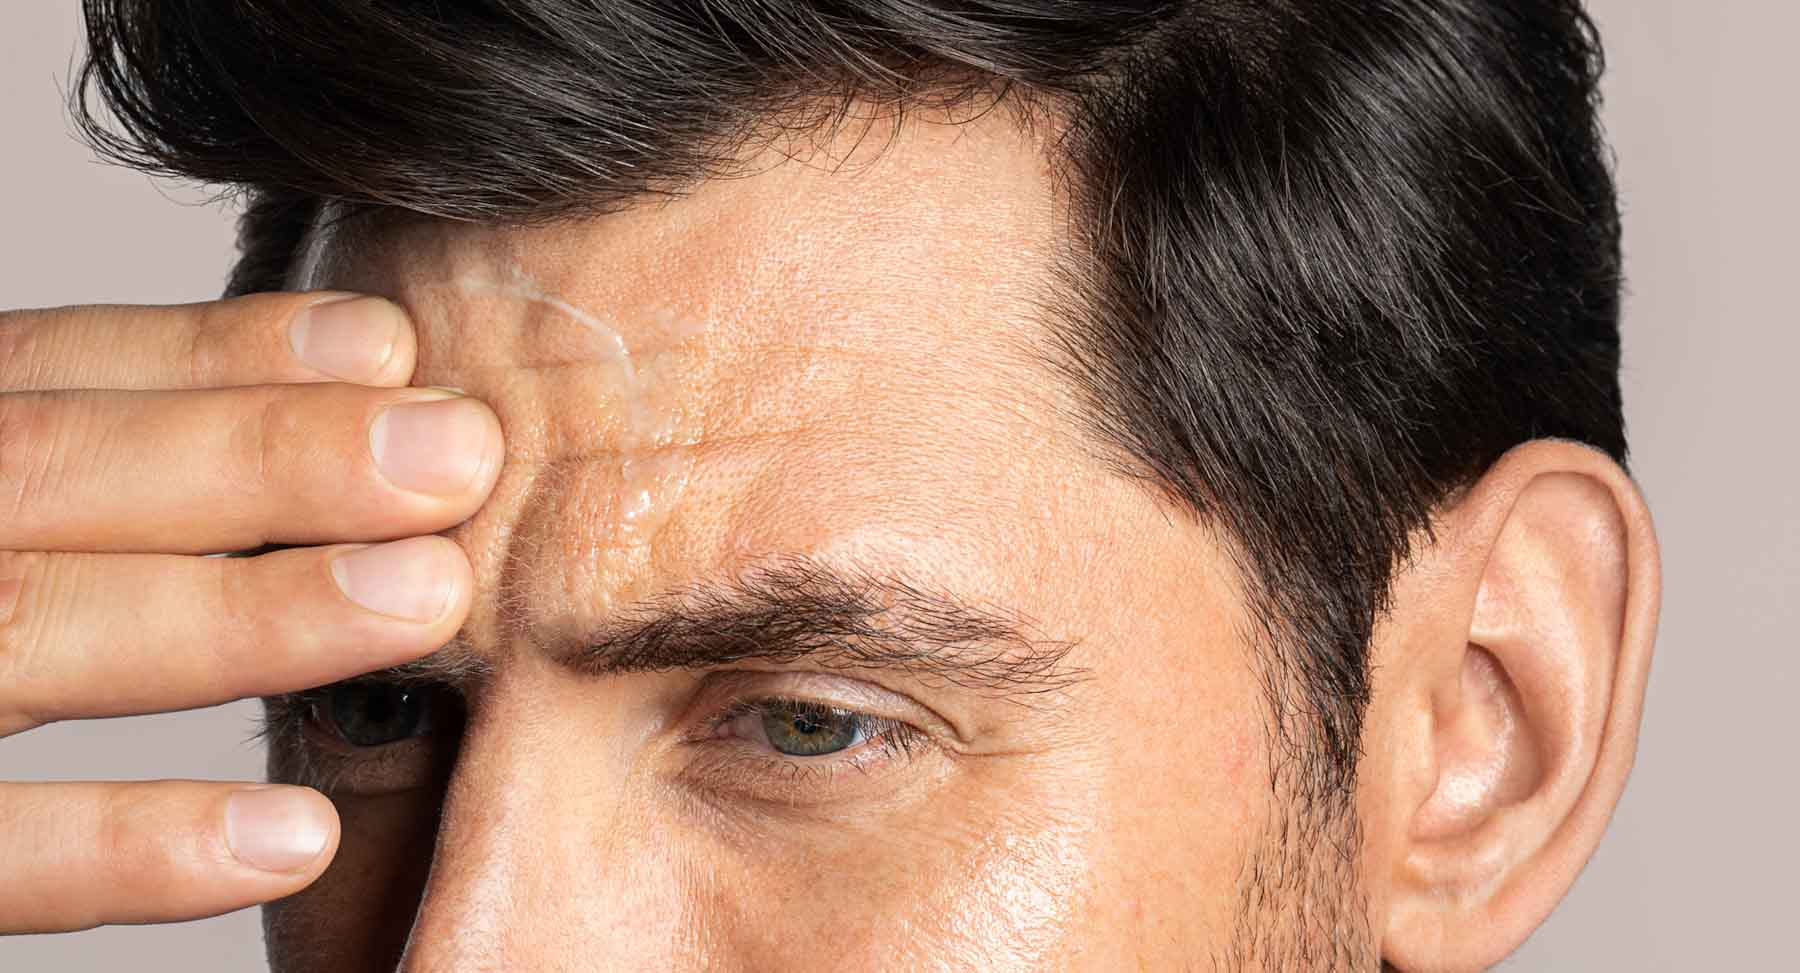 Tretinoin 101: How it Works, Uses, Side Effects & More